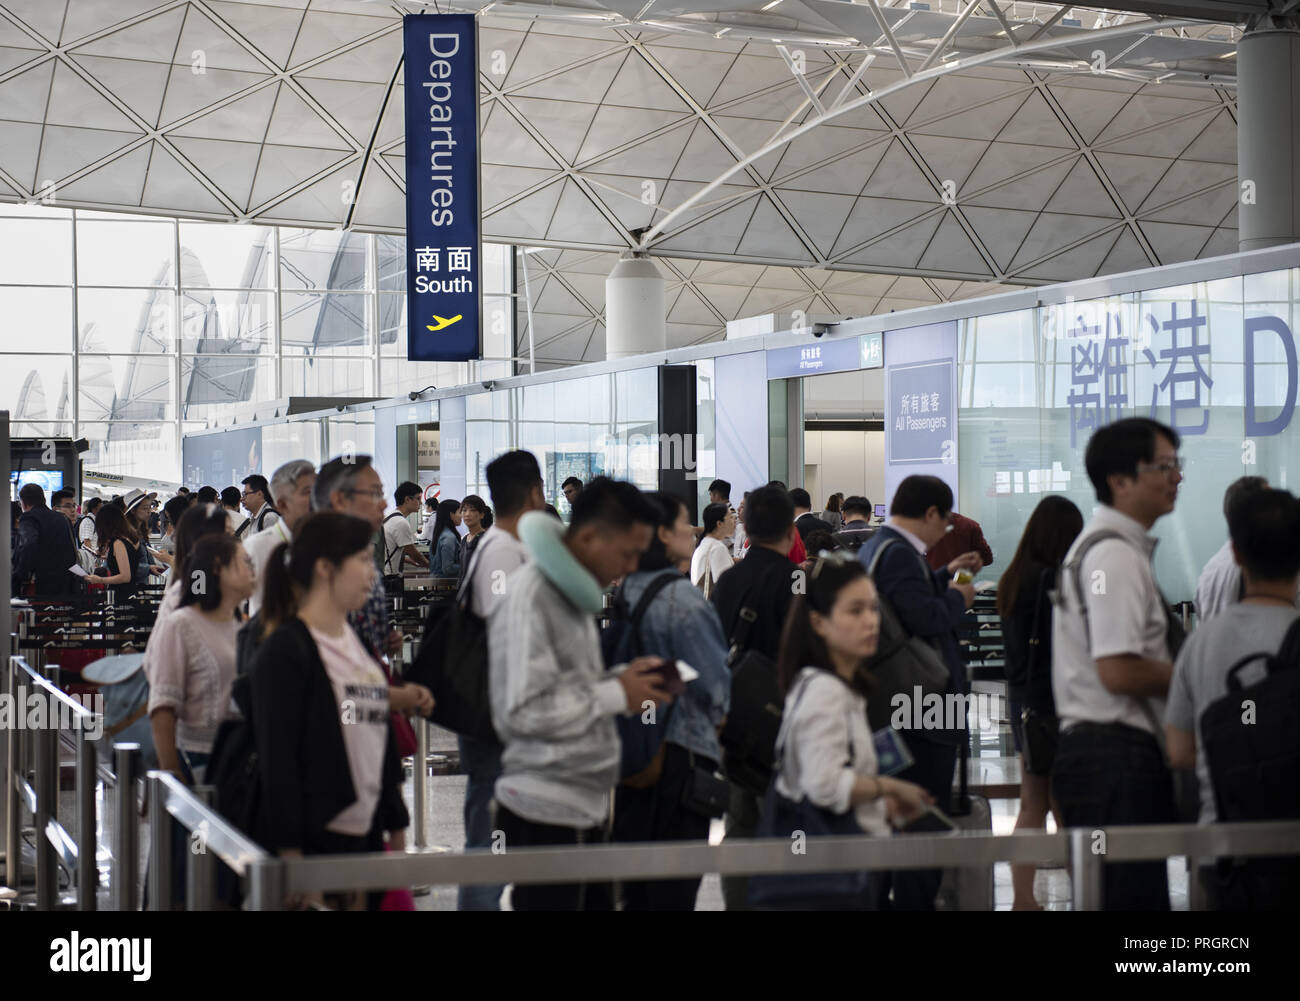 Chek Lap Kok island, Hong Kong. 28th Sep, 2018. Travellers are seen in a queue waiting to go through the security terminal. in Hong Kong. Credit: Miguel Candela/SOPA Images/ZUMA Wire/Alamy Live News - Stock Image